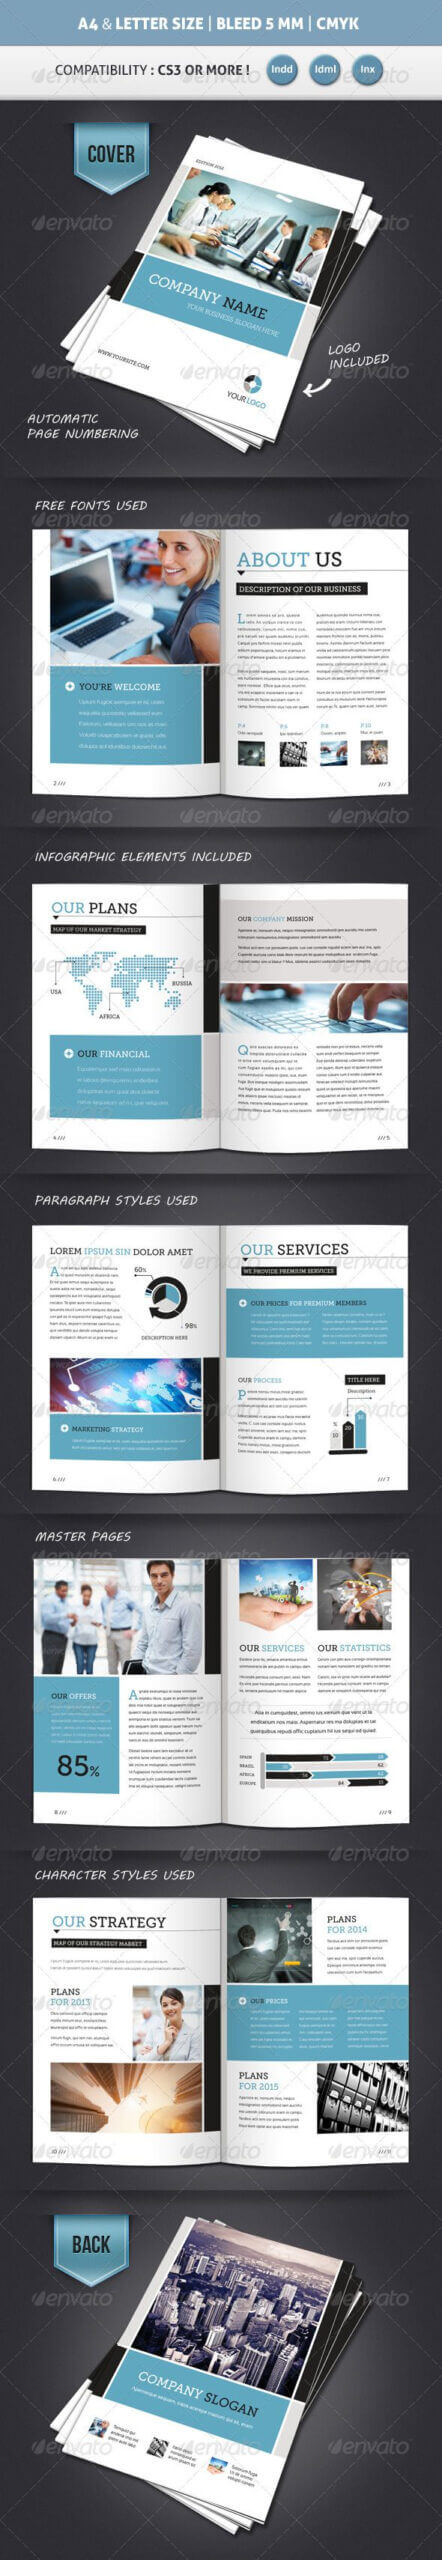 Corporate Brochure Template A4 & Letter 12 Pages Intended For 12 Page Brochure Template